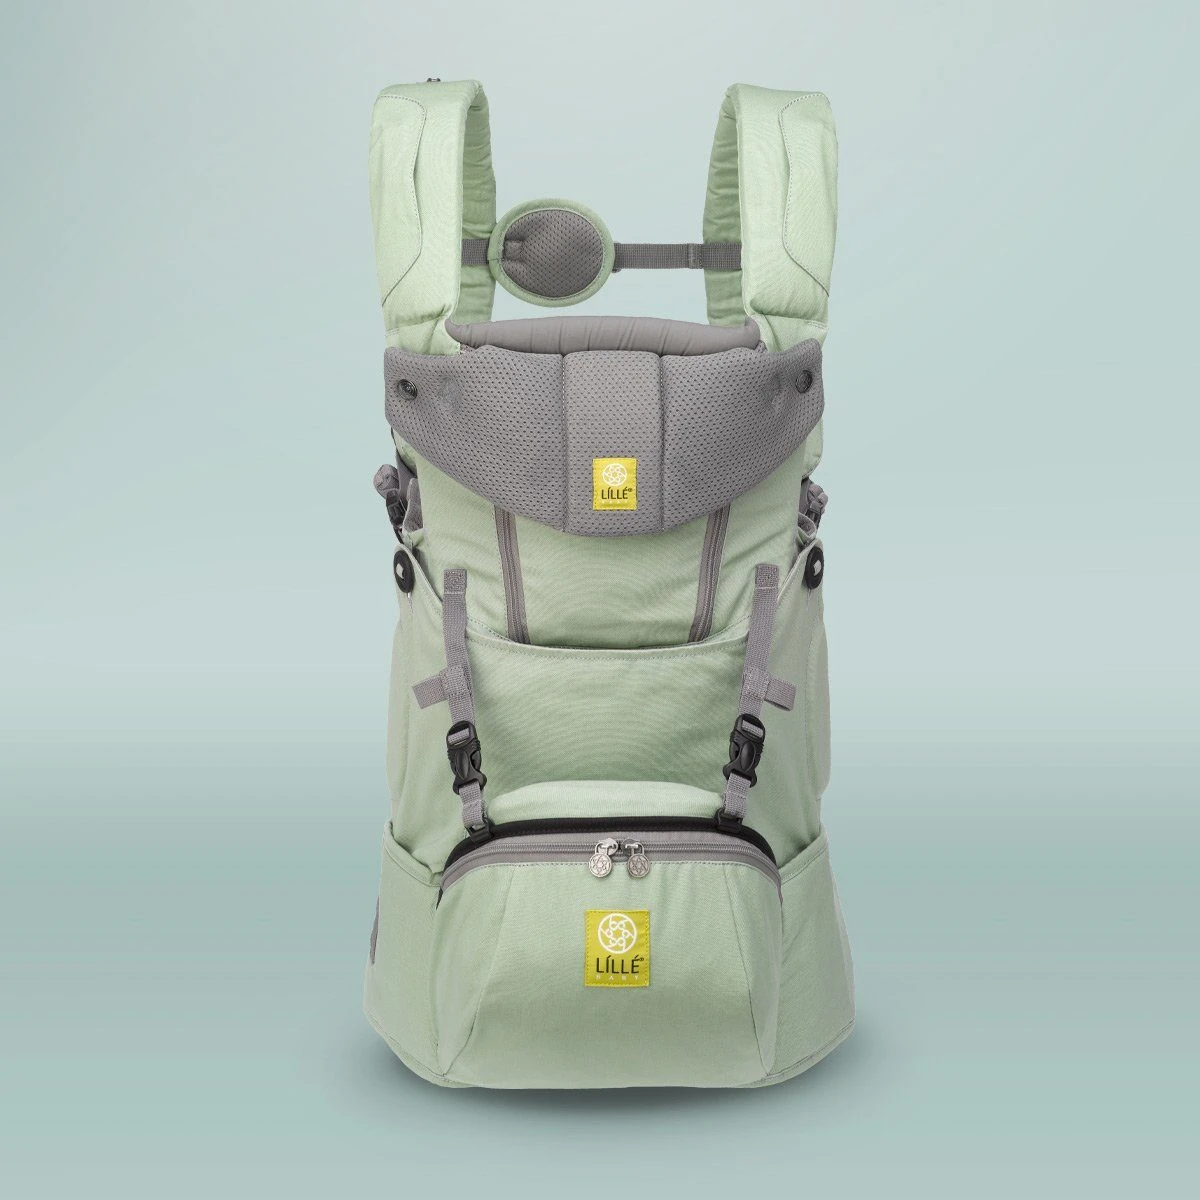 LILLEbaby SeatMe All Seasons Carrier in Sage